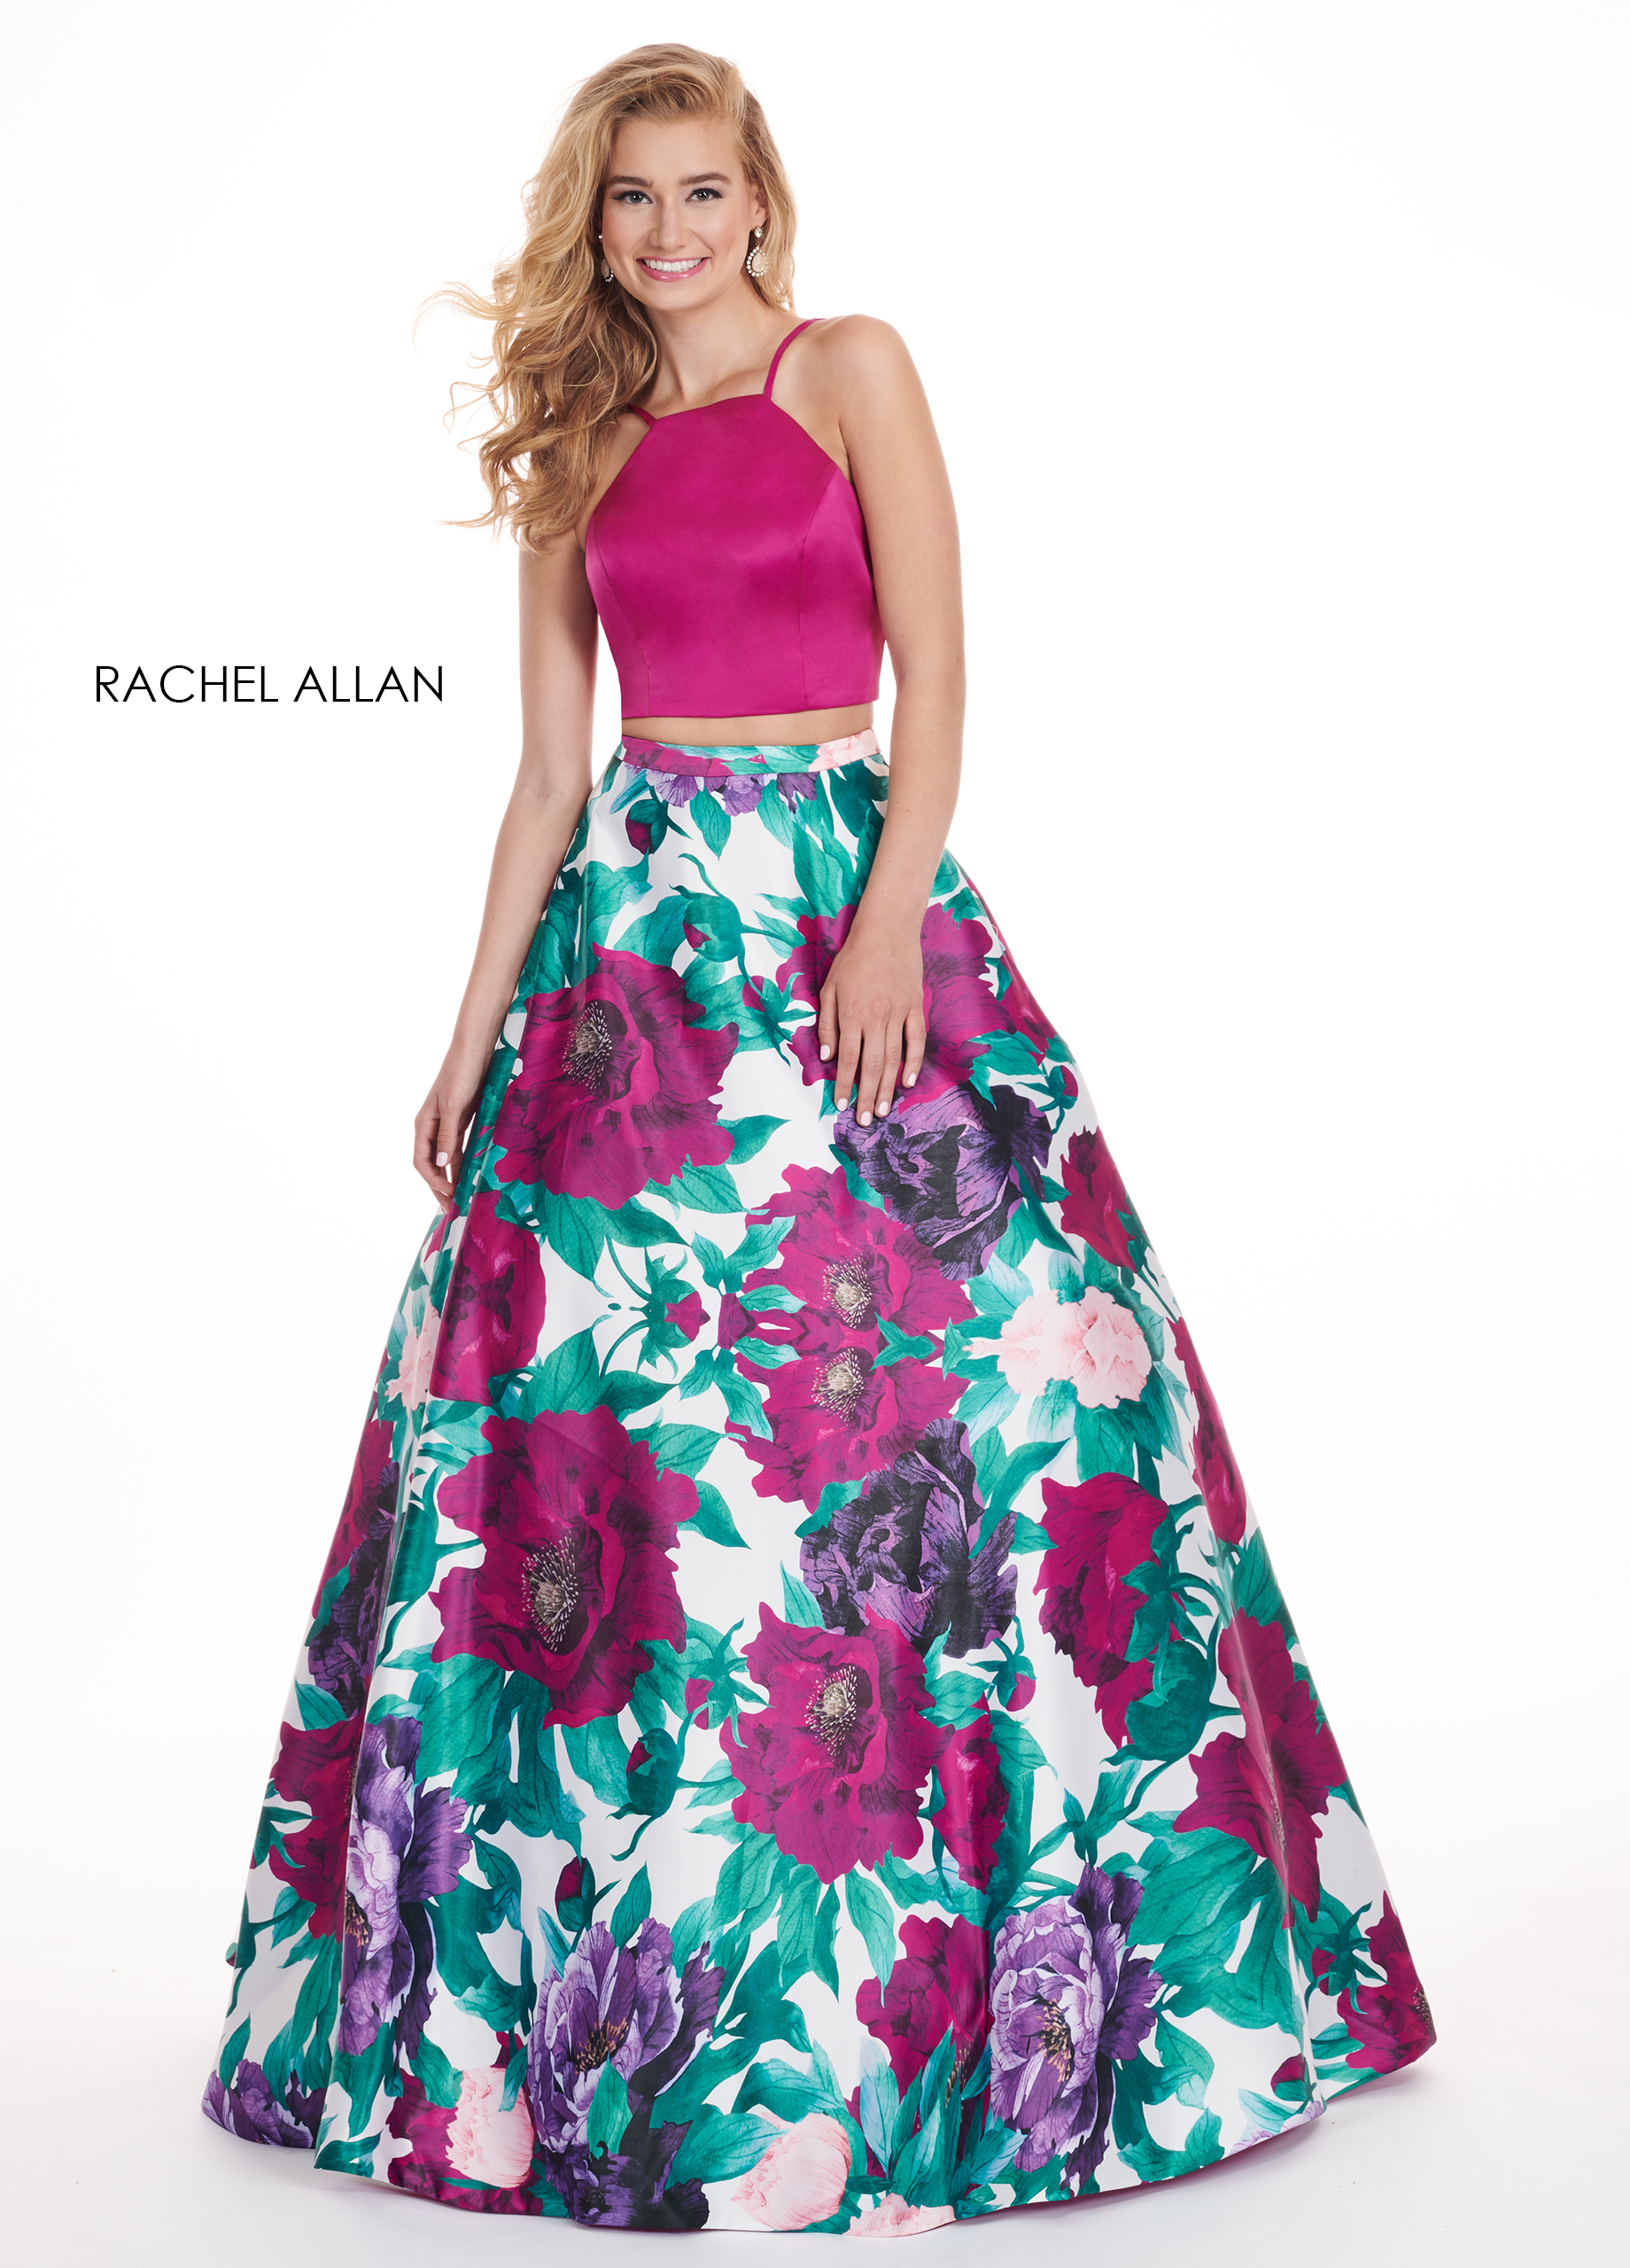 Strappy Two-Piece Prom Dresses in Magenta Color